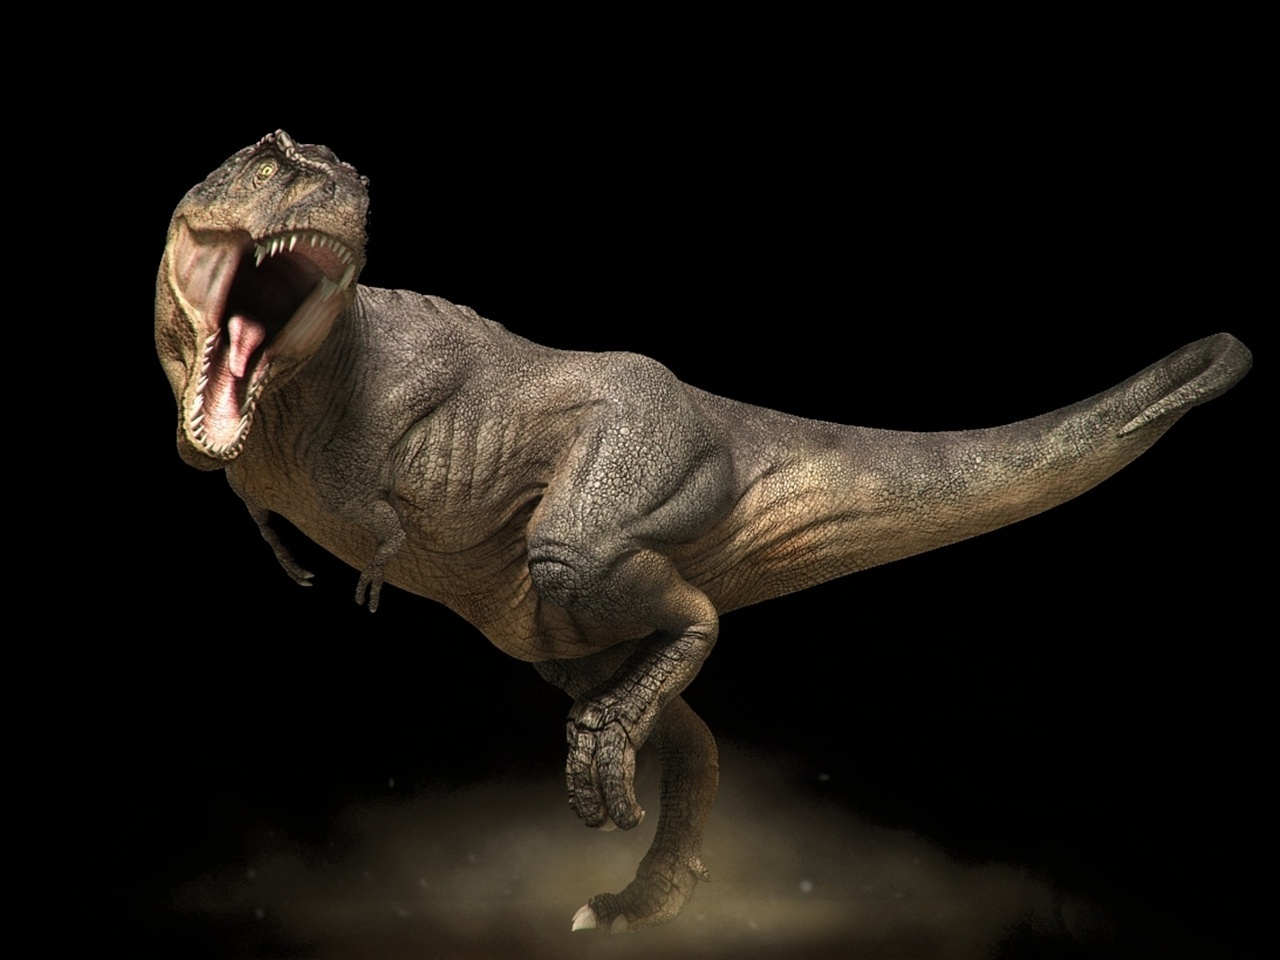 22586 download wallpaper Animals, Dinosaurs screensavers and pictures for free